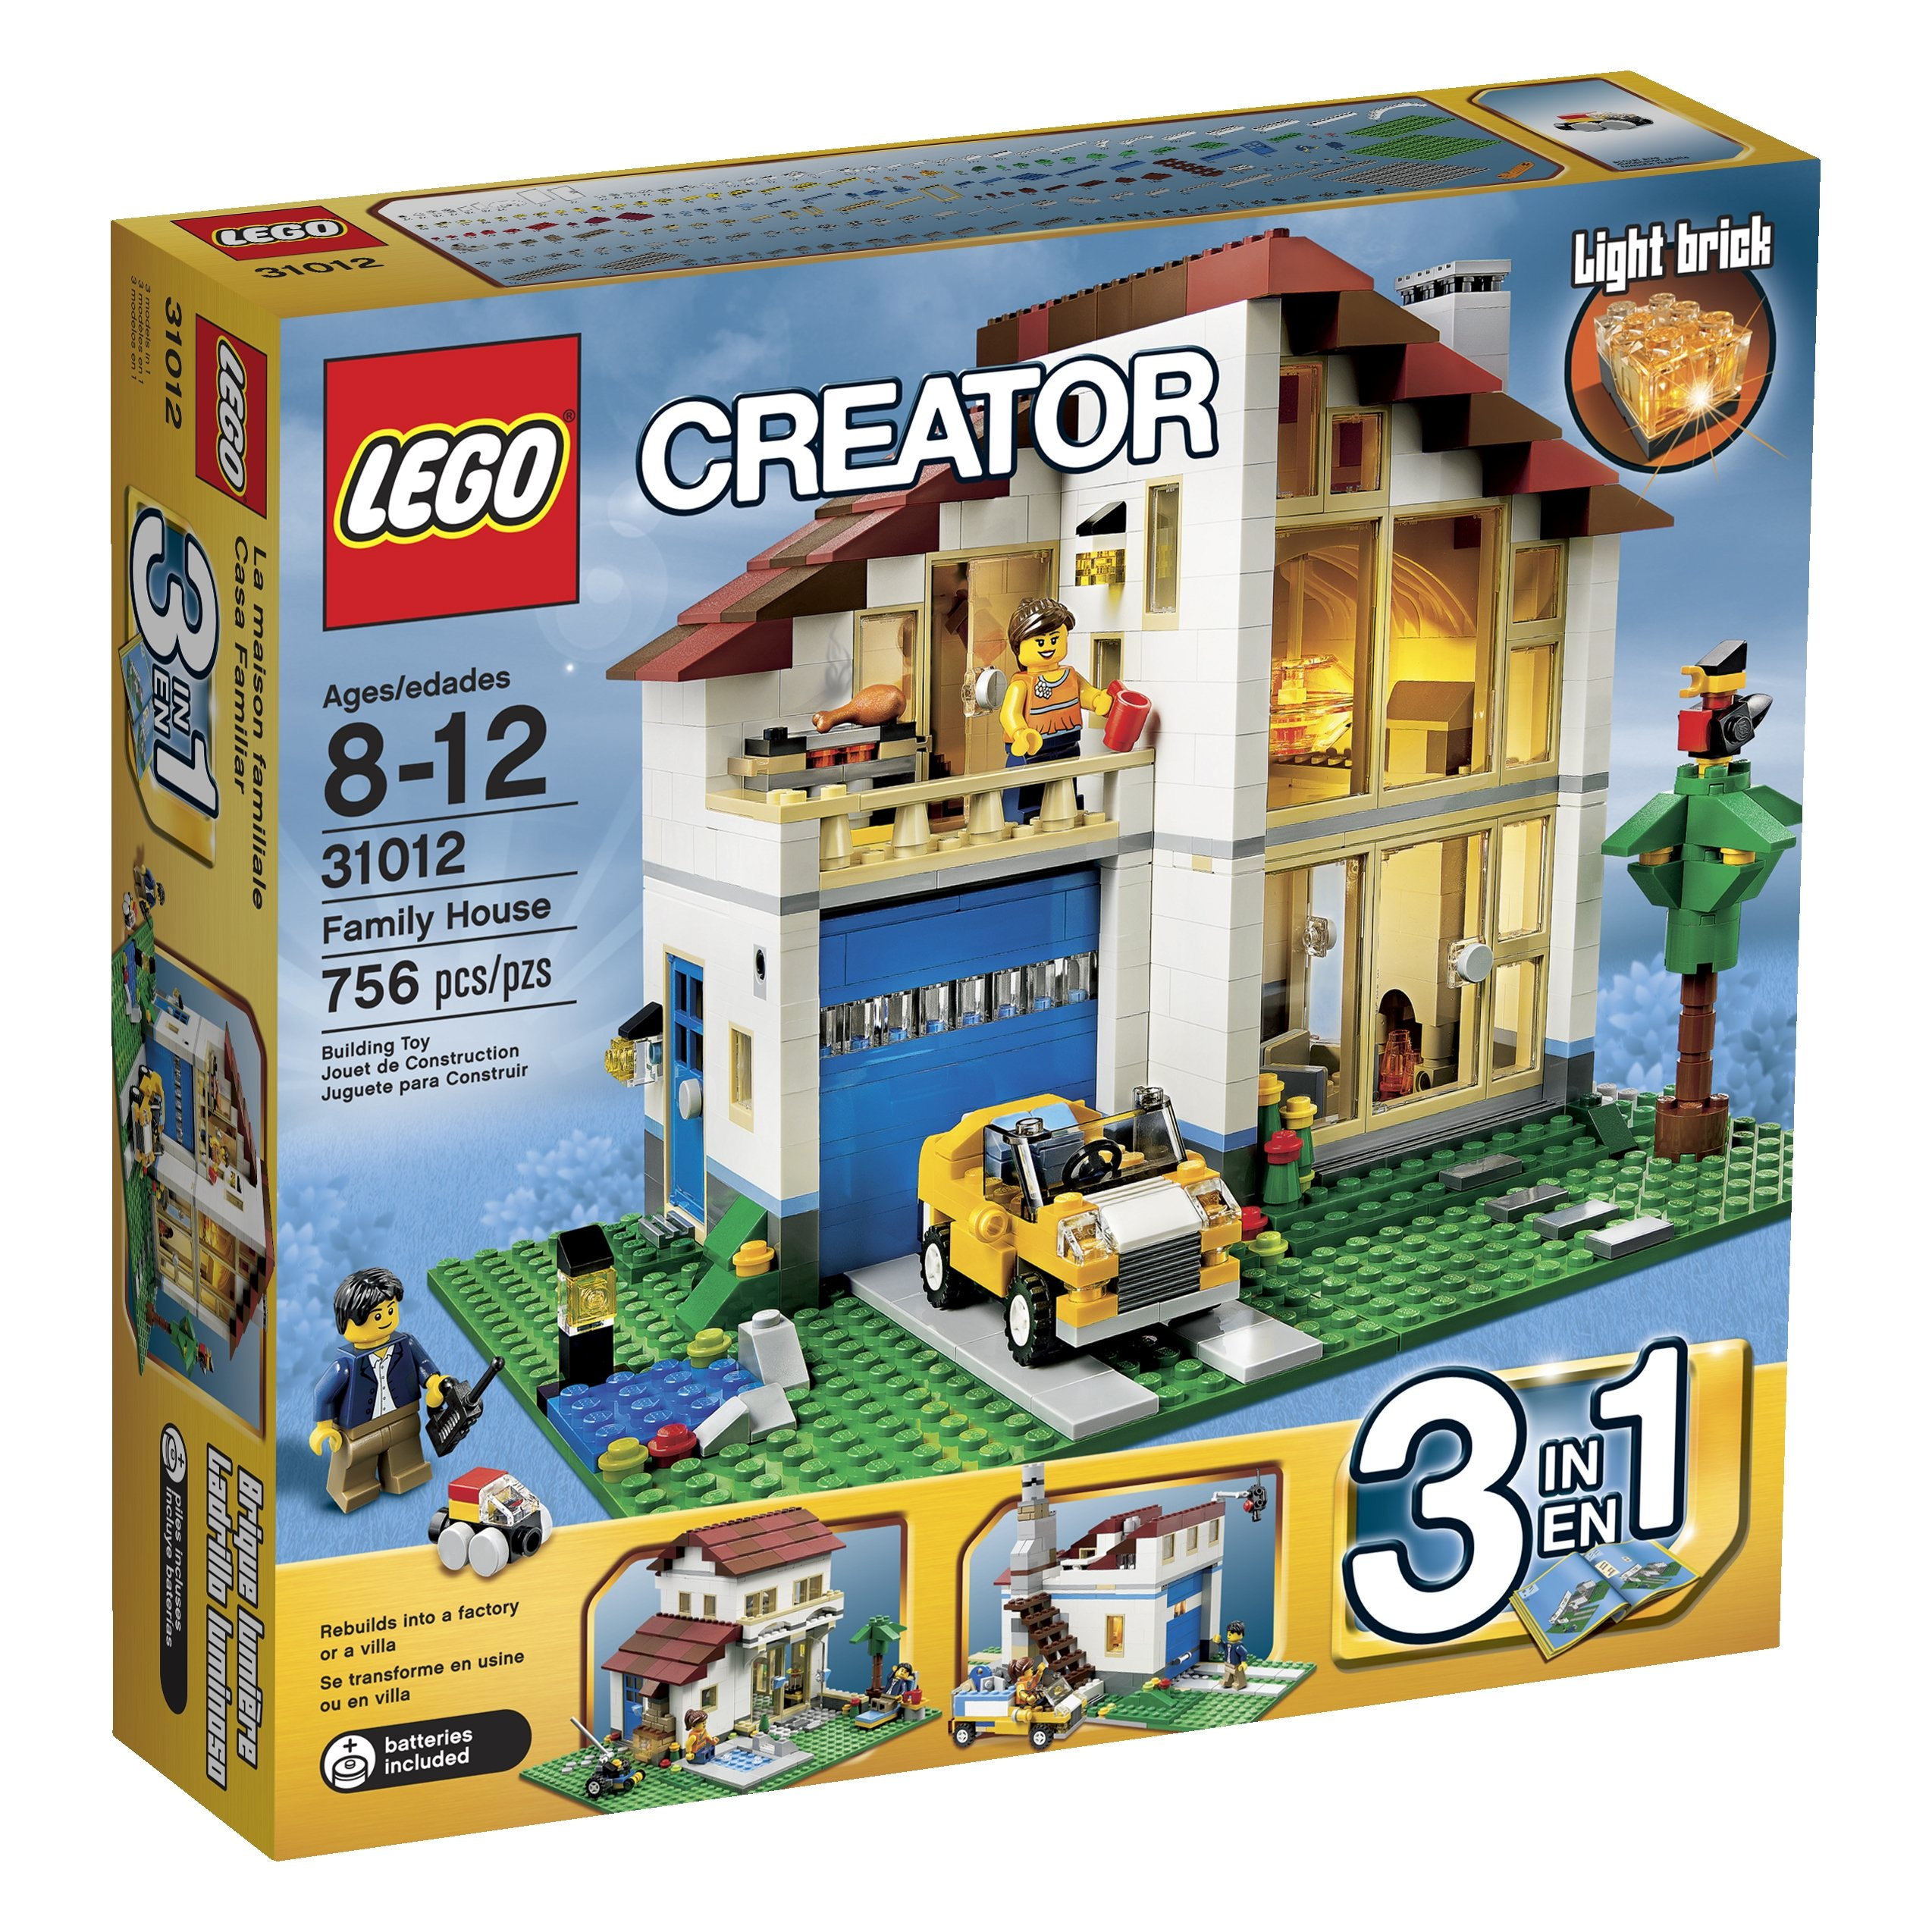 LEGO Creator Family House (31012) (Discontinued by manufacturer) by LEGO